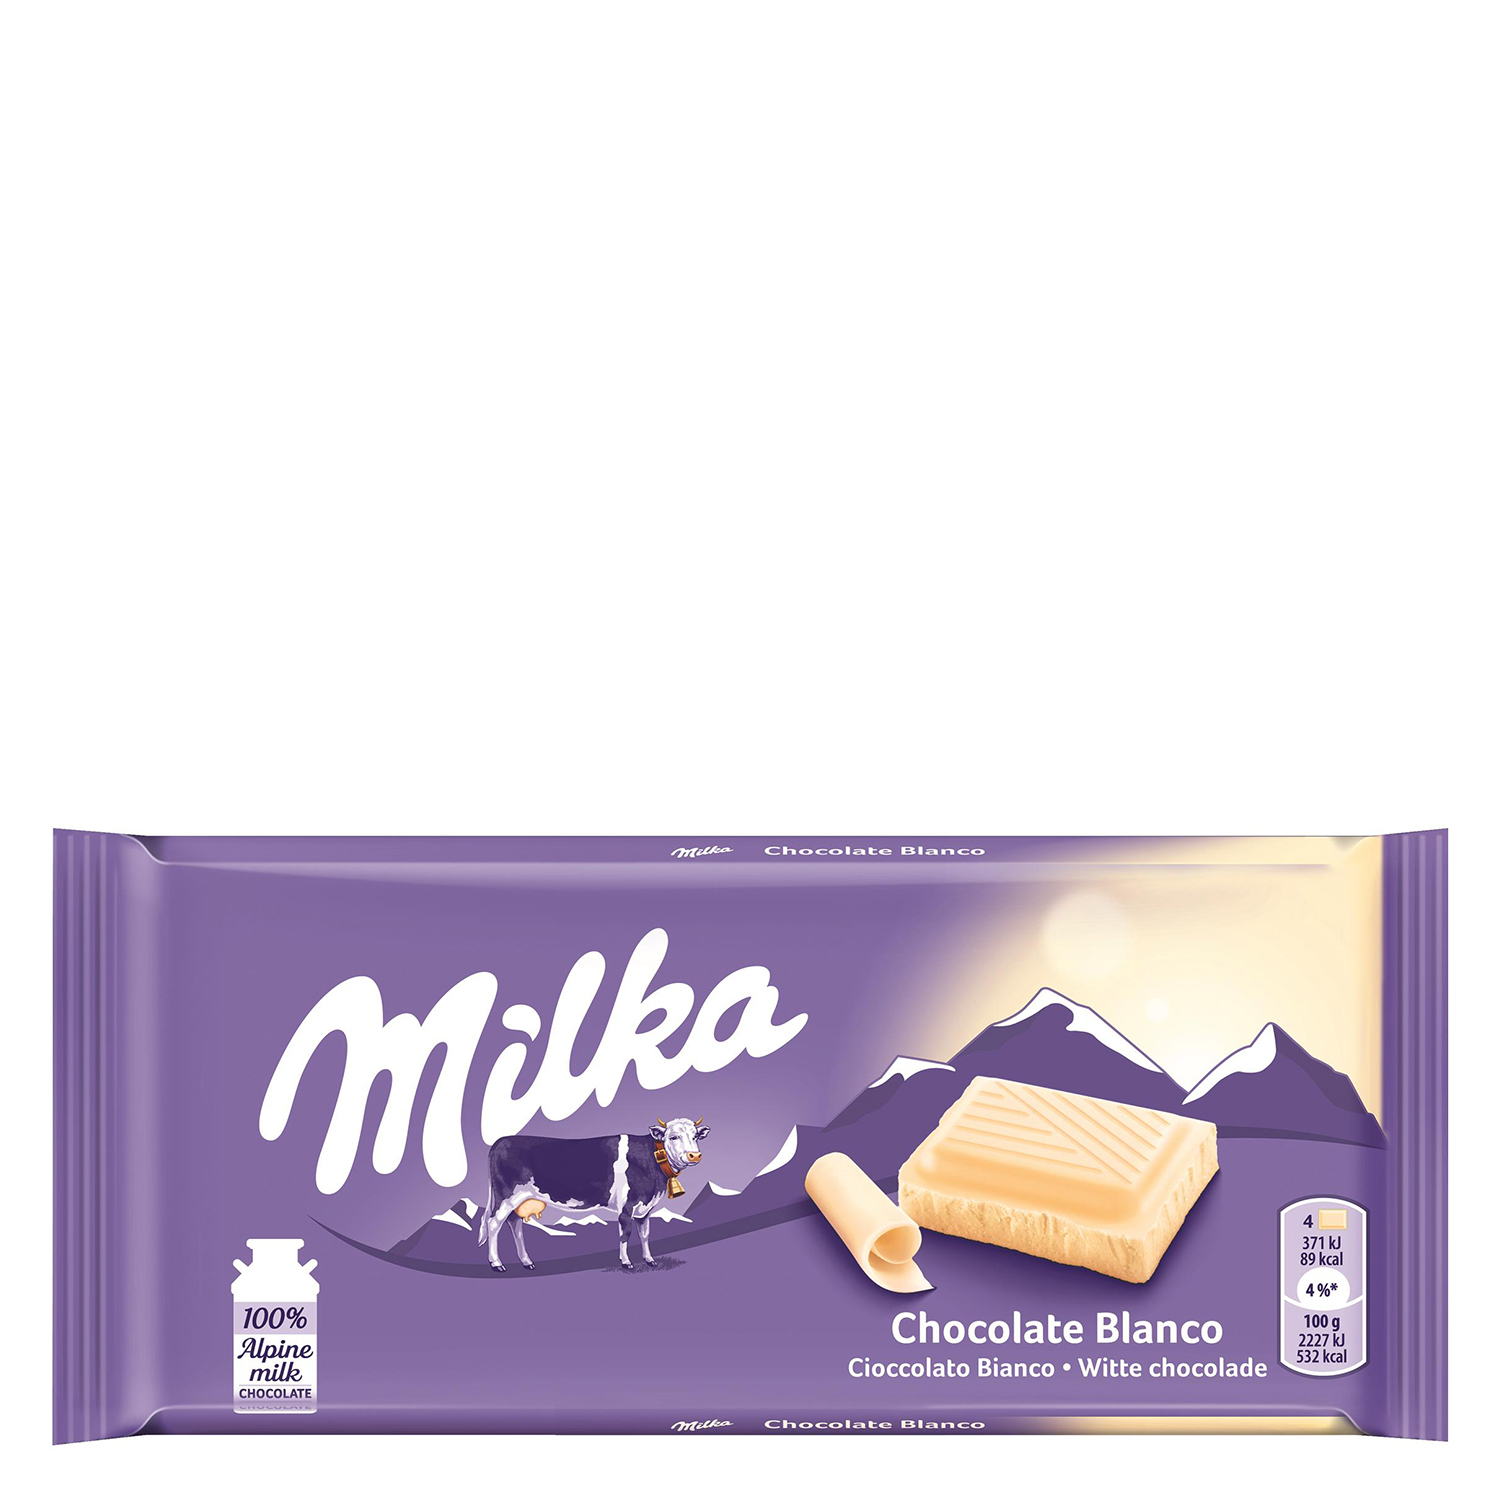 Tableta chocolate blanco Milka - Carrefour supermercado compra online